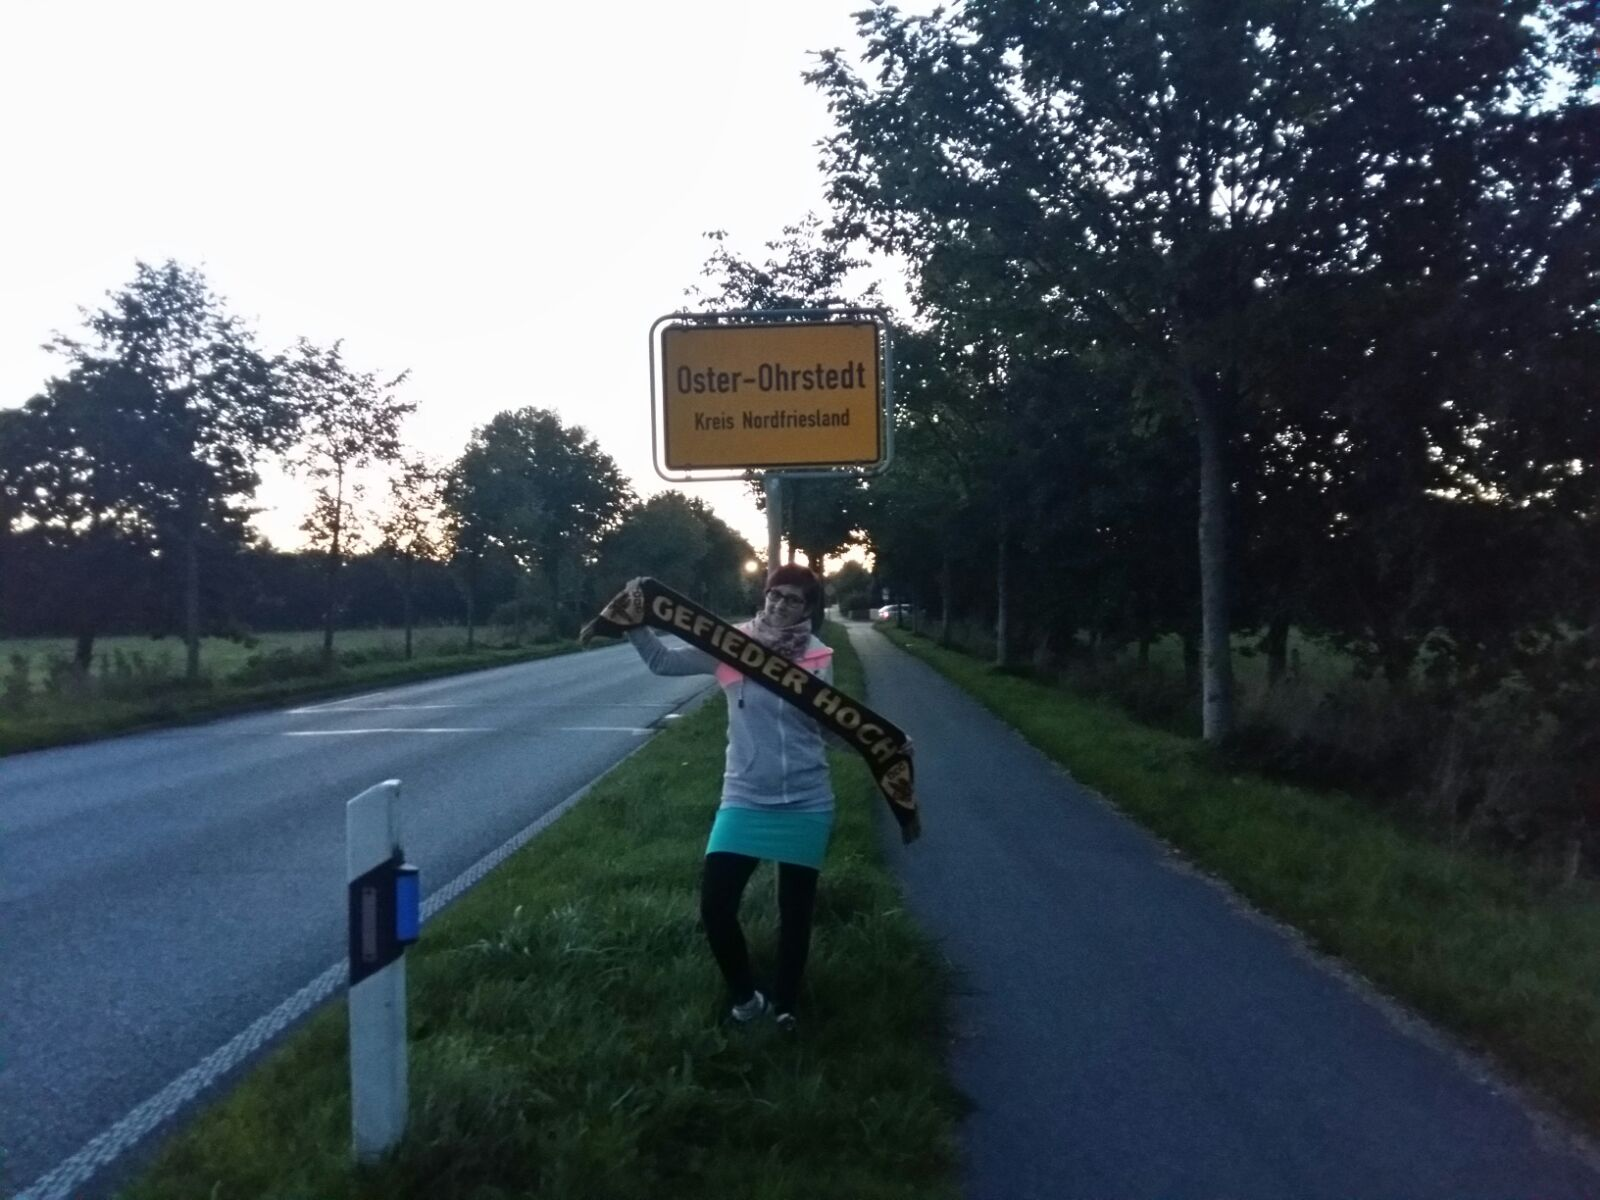 Oster-Ohrstedt, 688 km